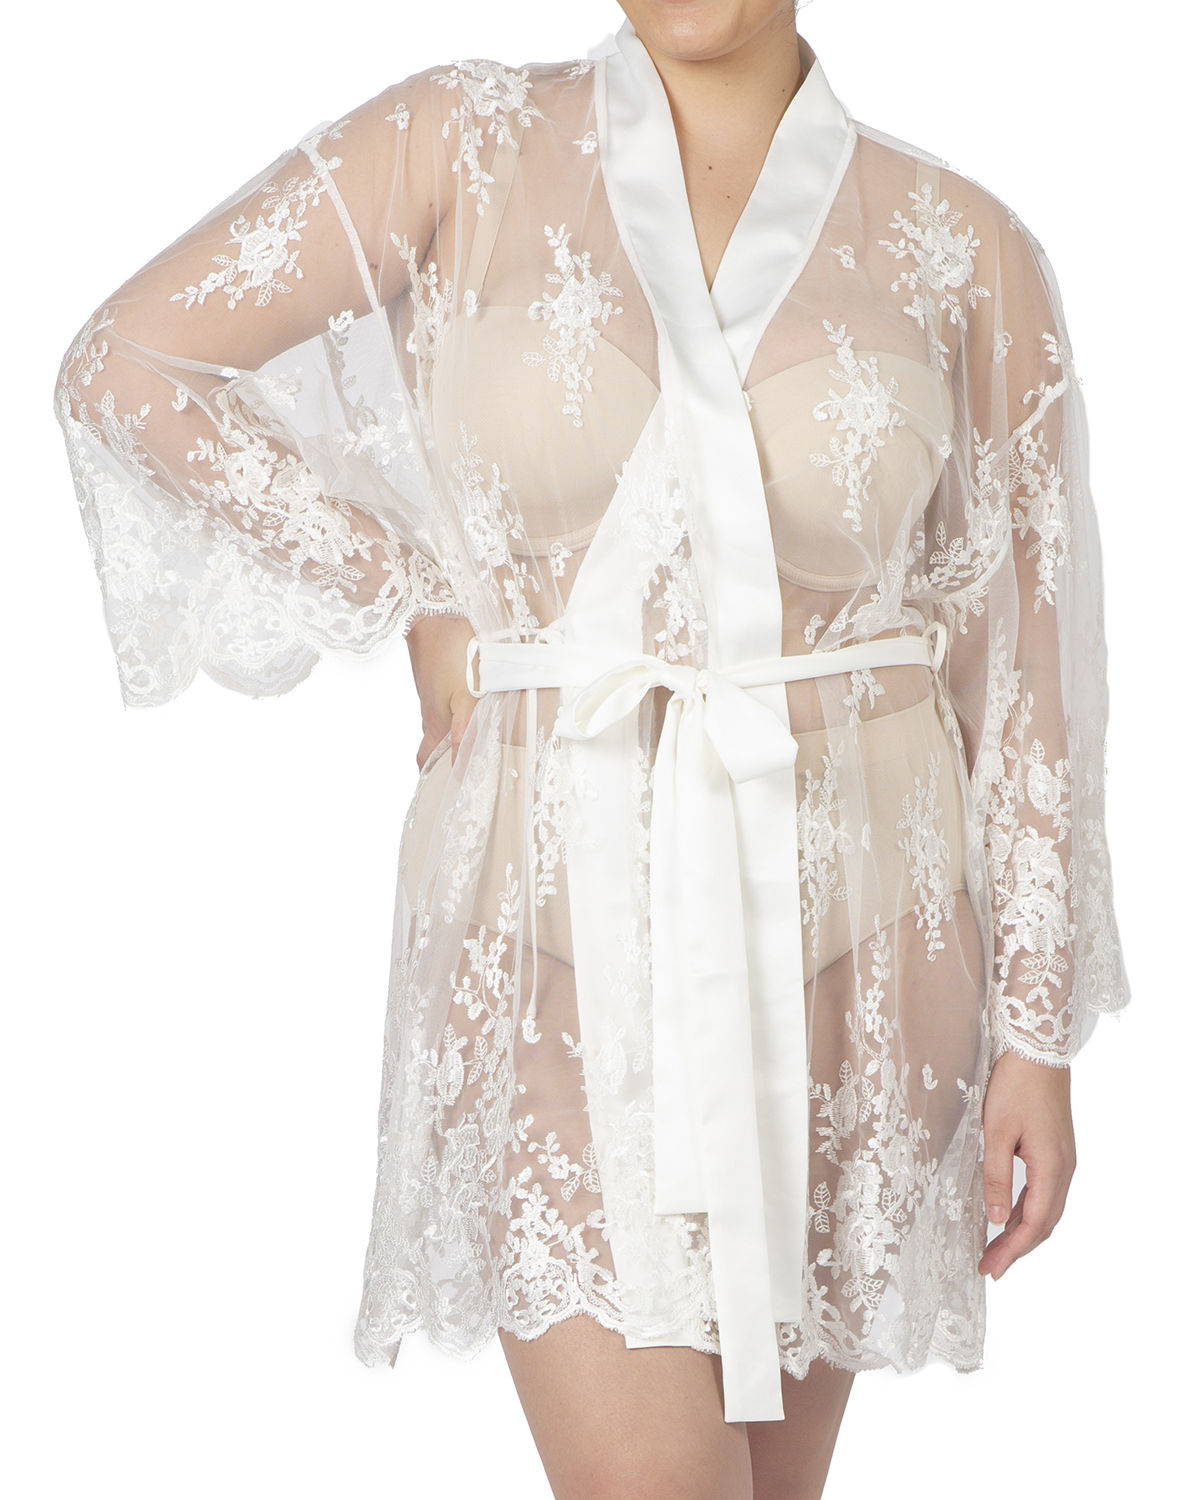 Rya Collection PLUS SIZE SHORT EMBROIDERED LACE SHEER ROBE